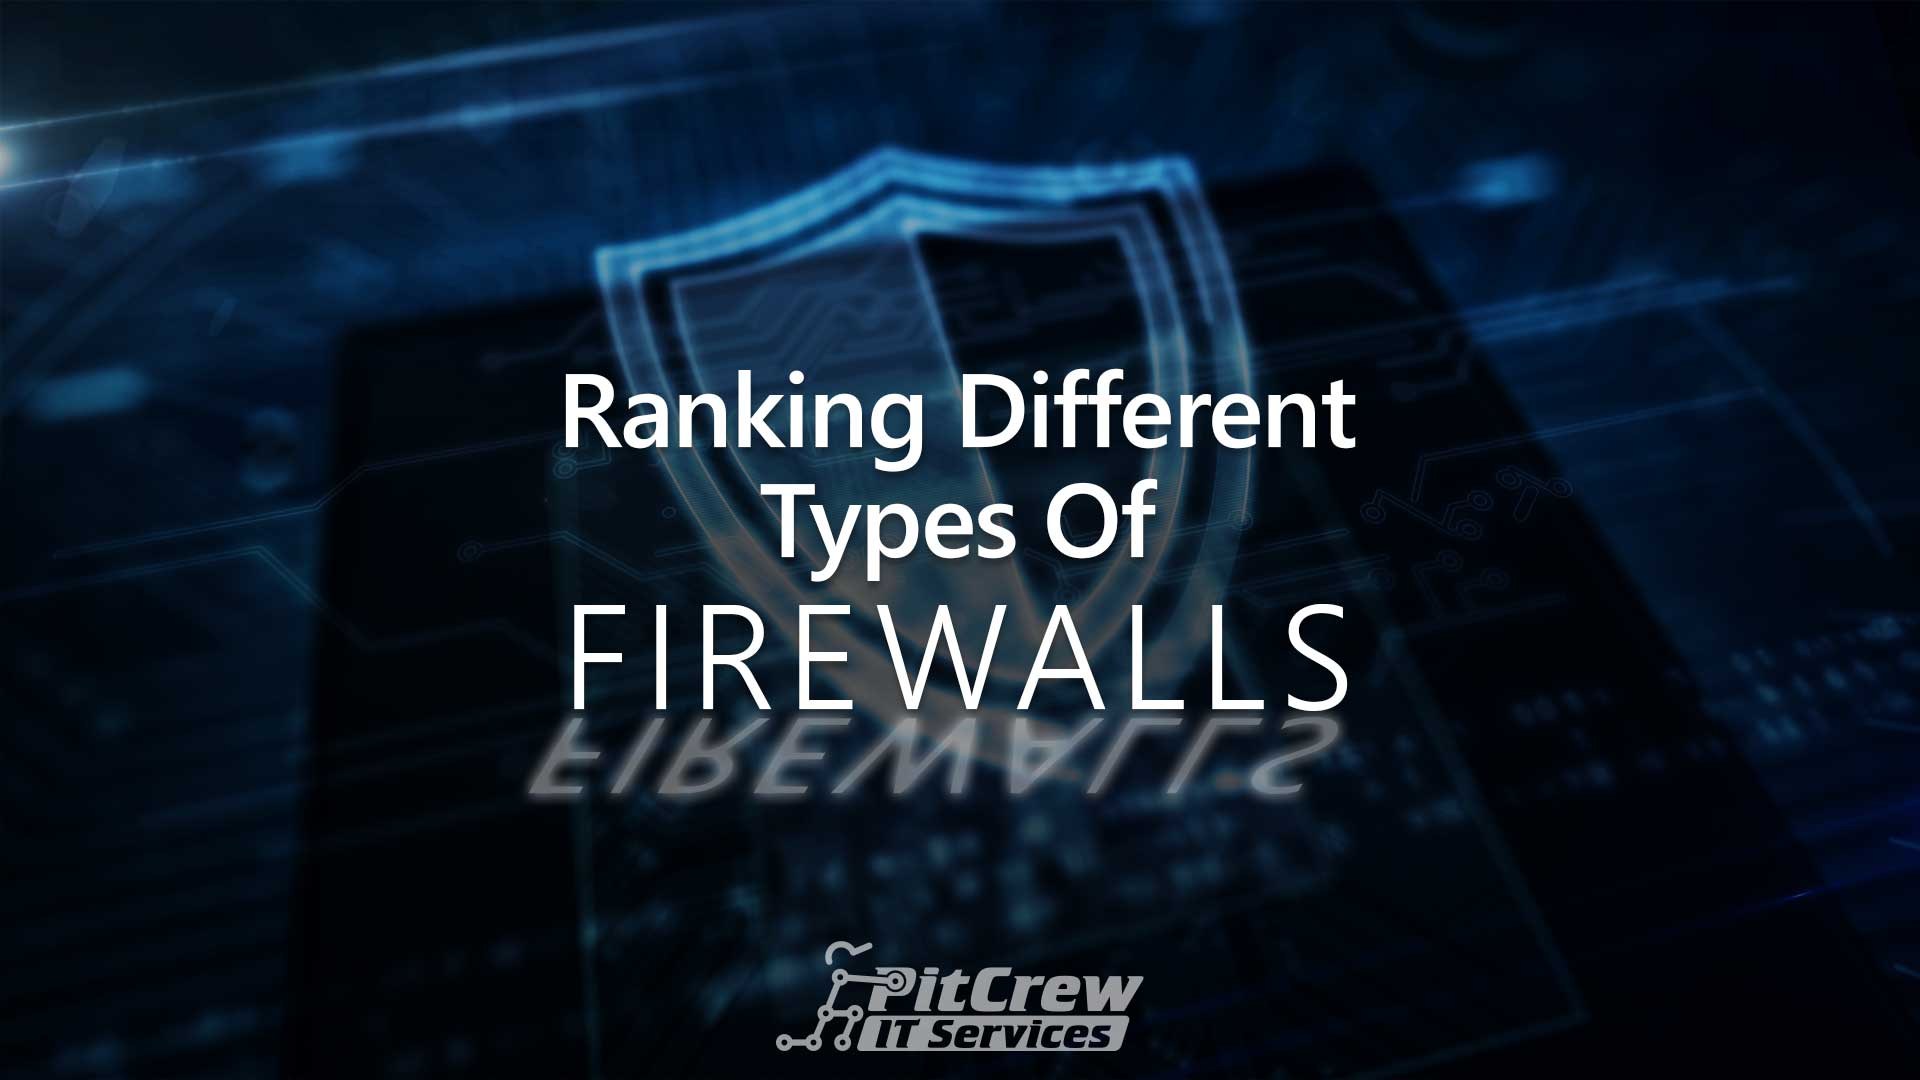 Ranking Different Types of Firewalls